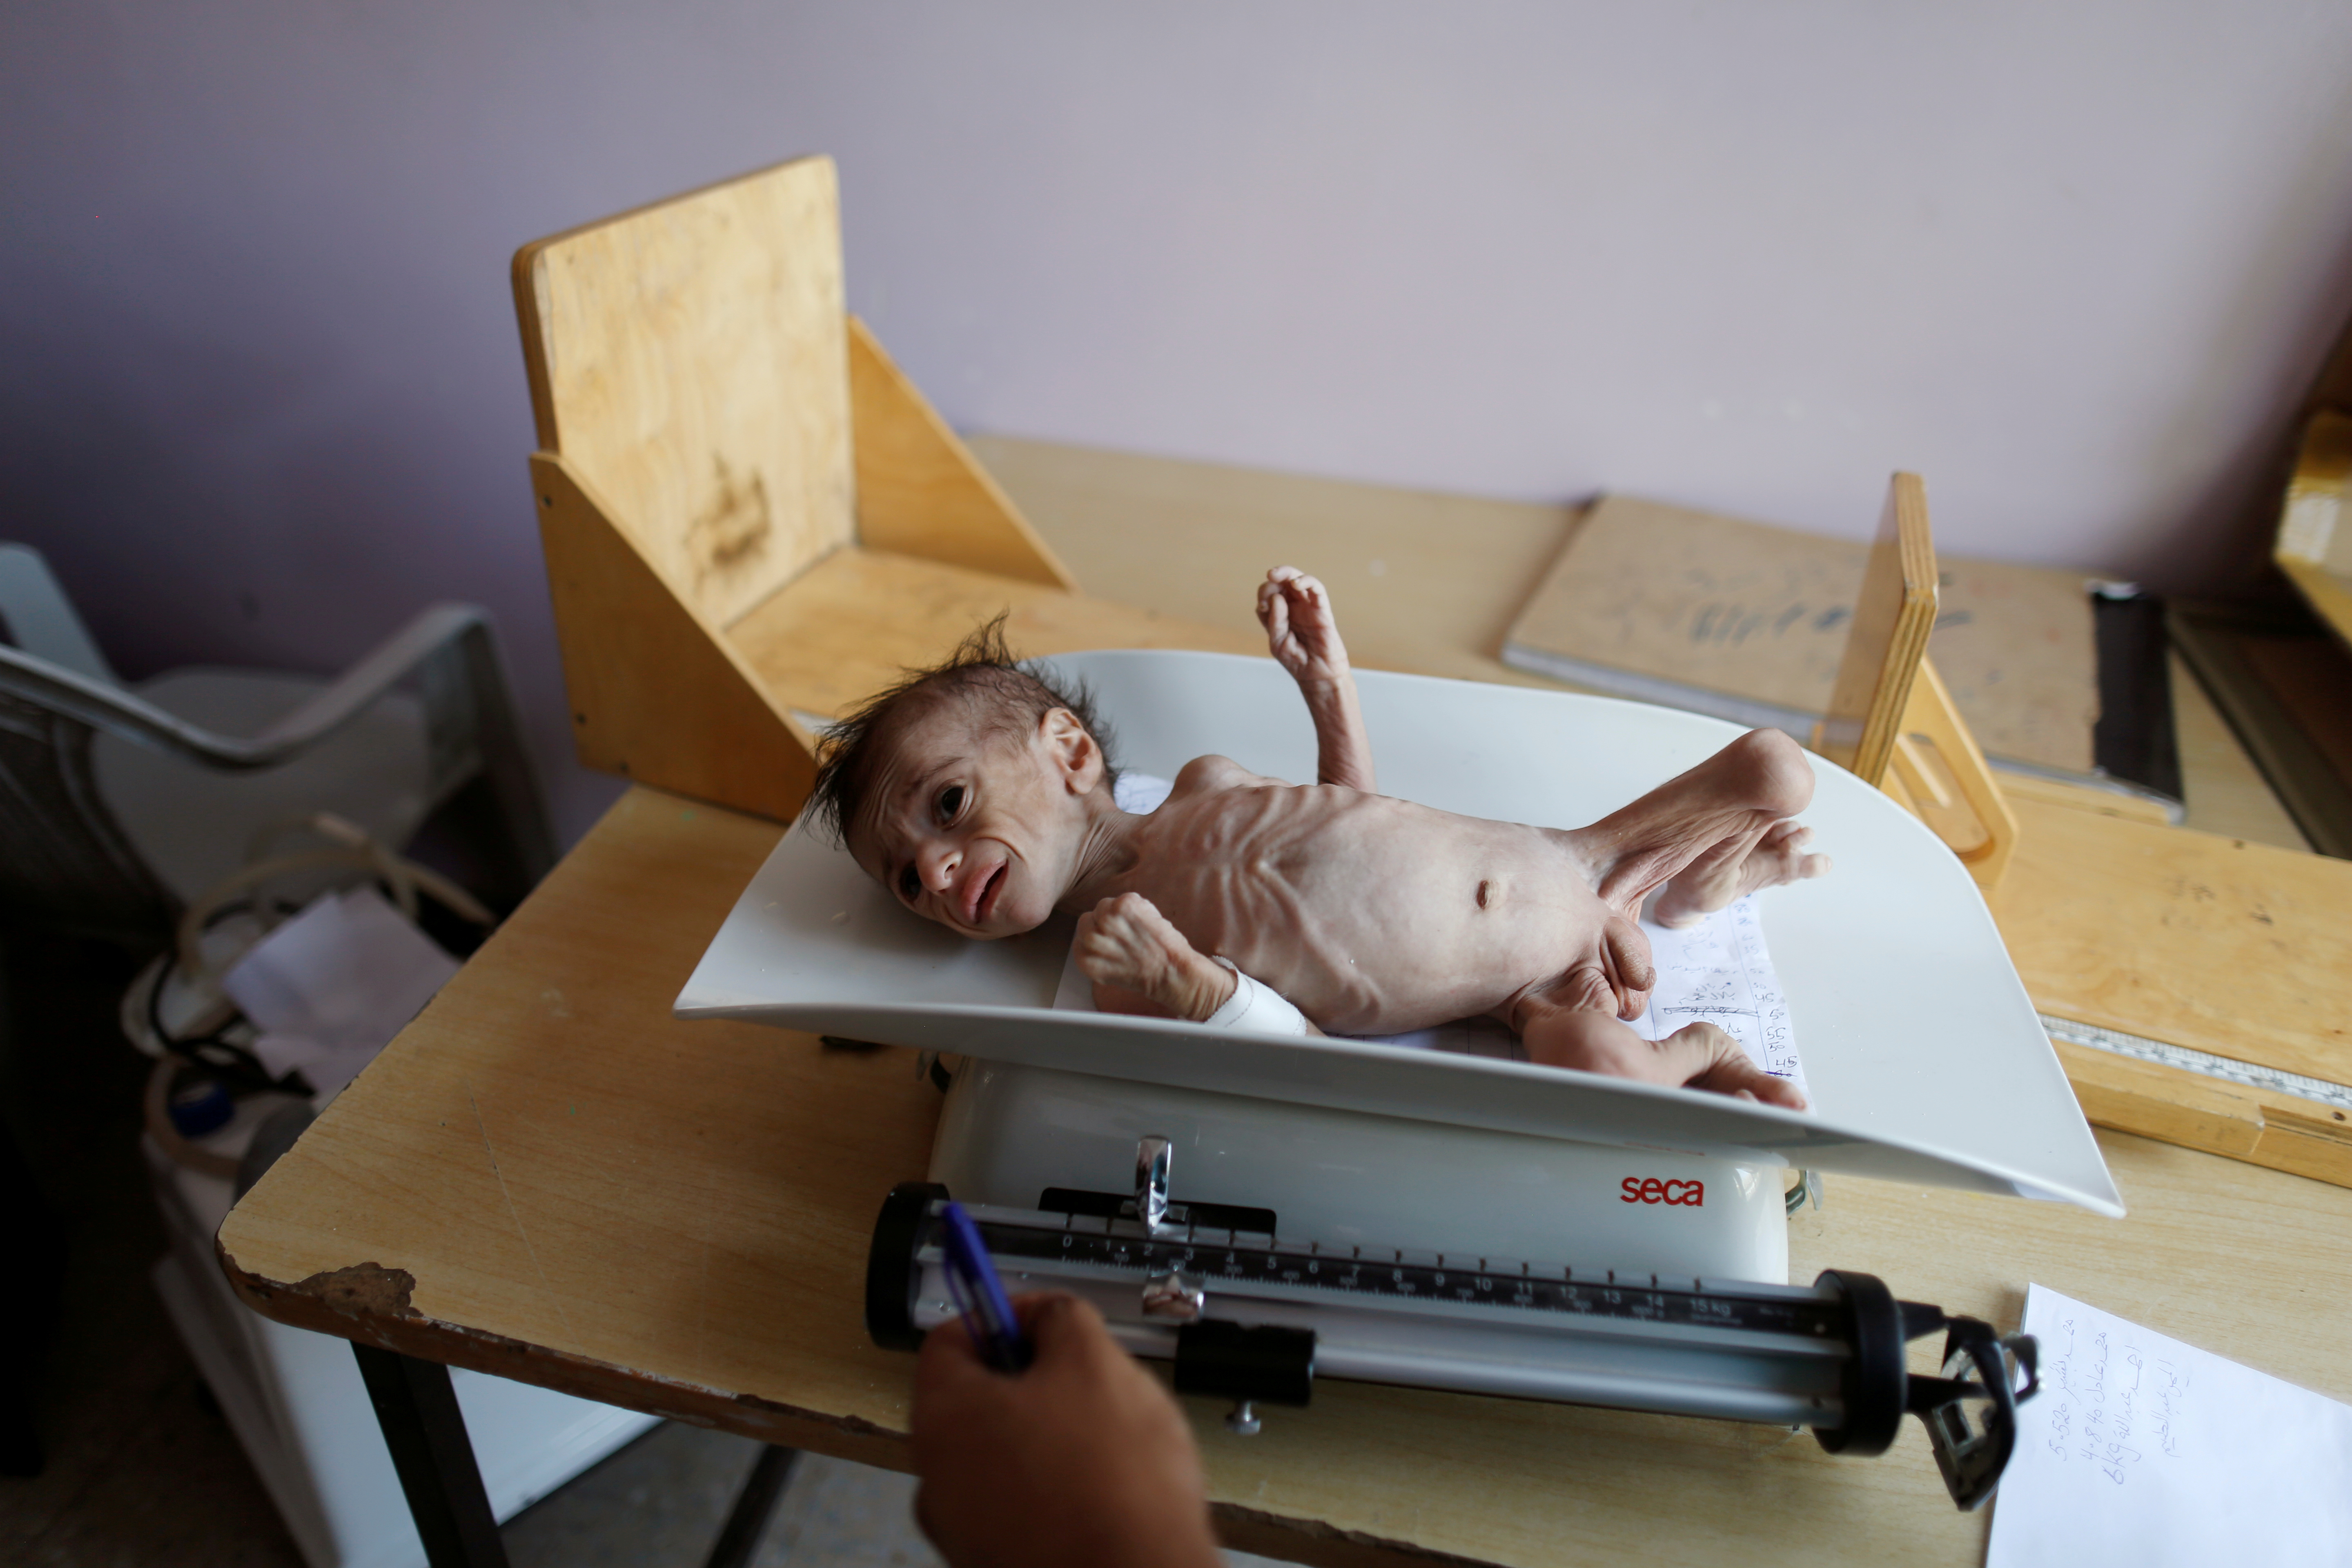 FILE PHOTO: A malnourished boy lies on a weighing scale at the malnutrition ward of al-Sabeen hospital in Sanaa, Yemen September 11, 2018. REUTERS/Khaled Abdullah/File Photo